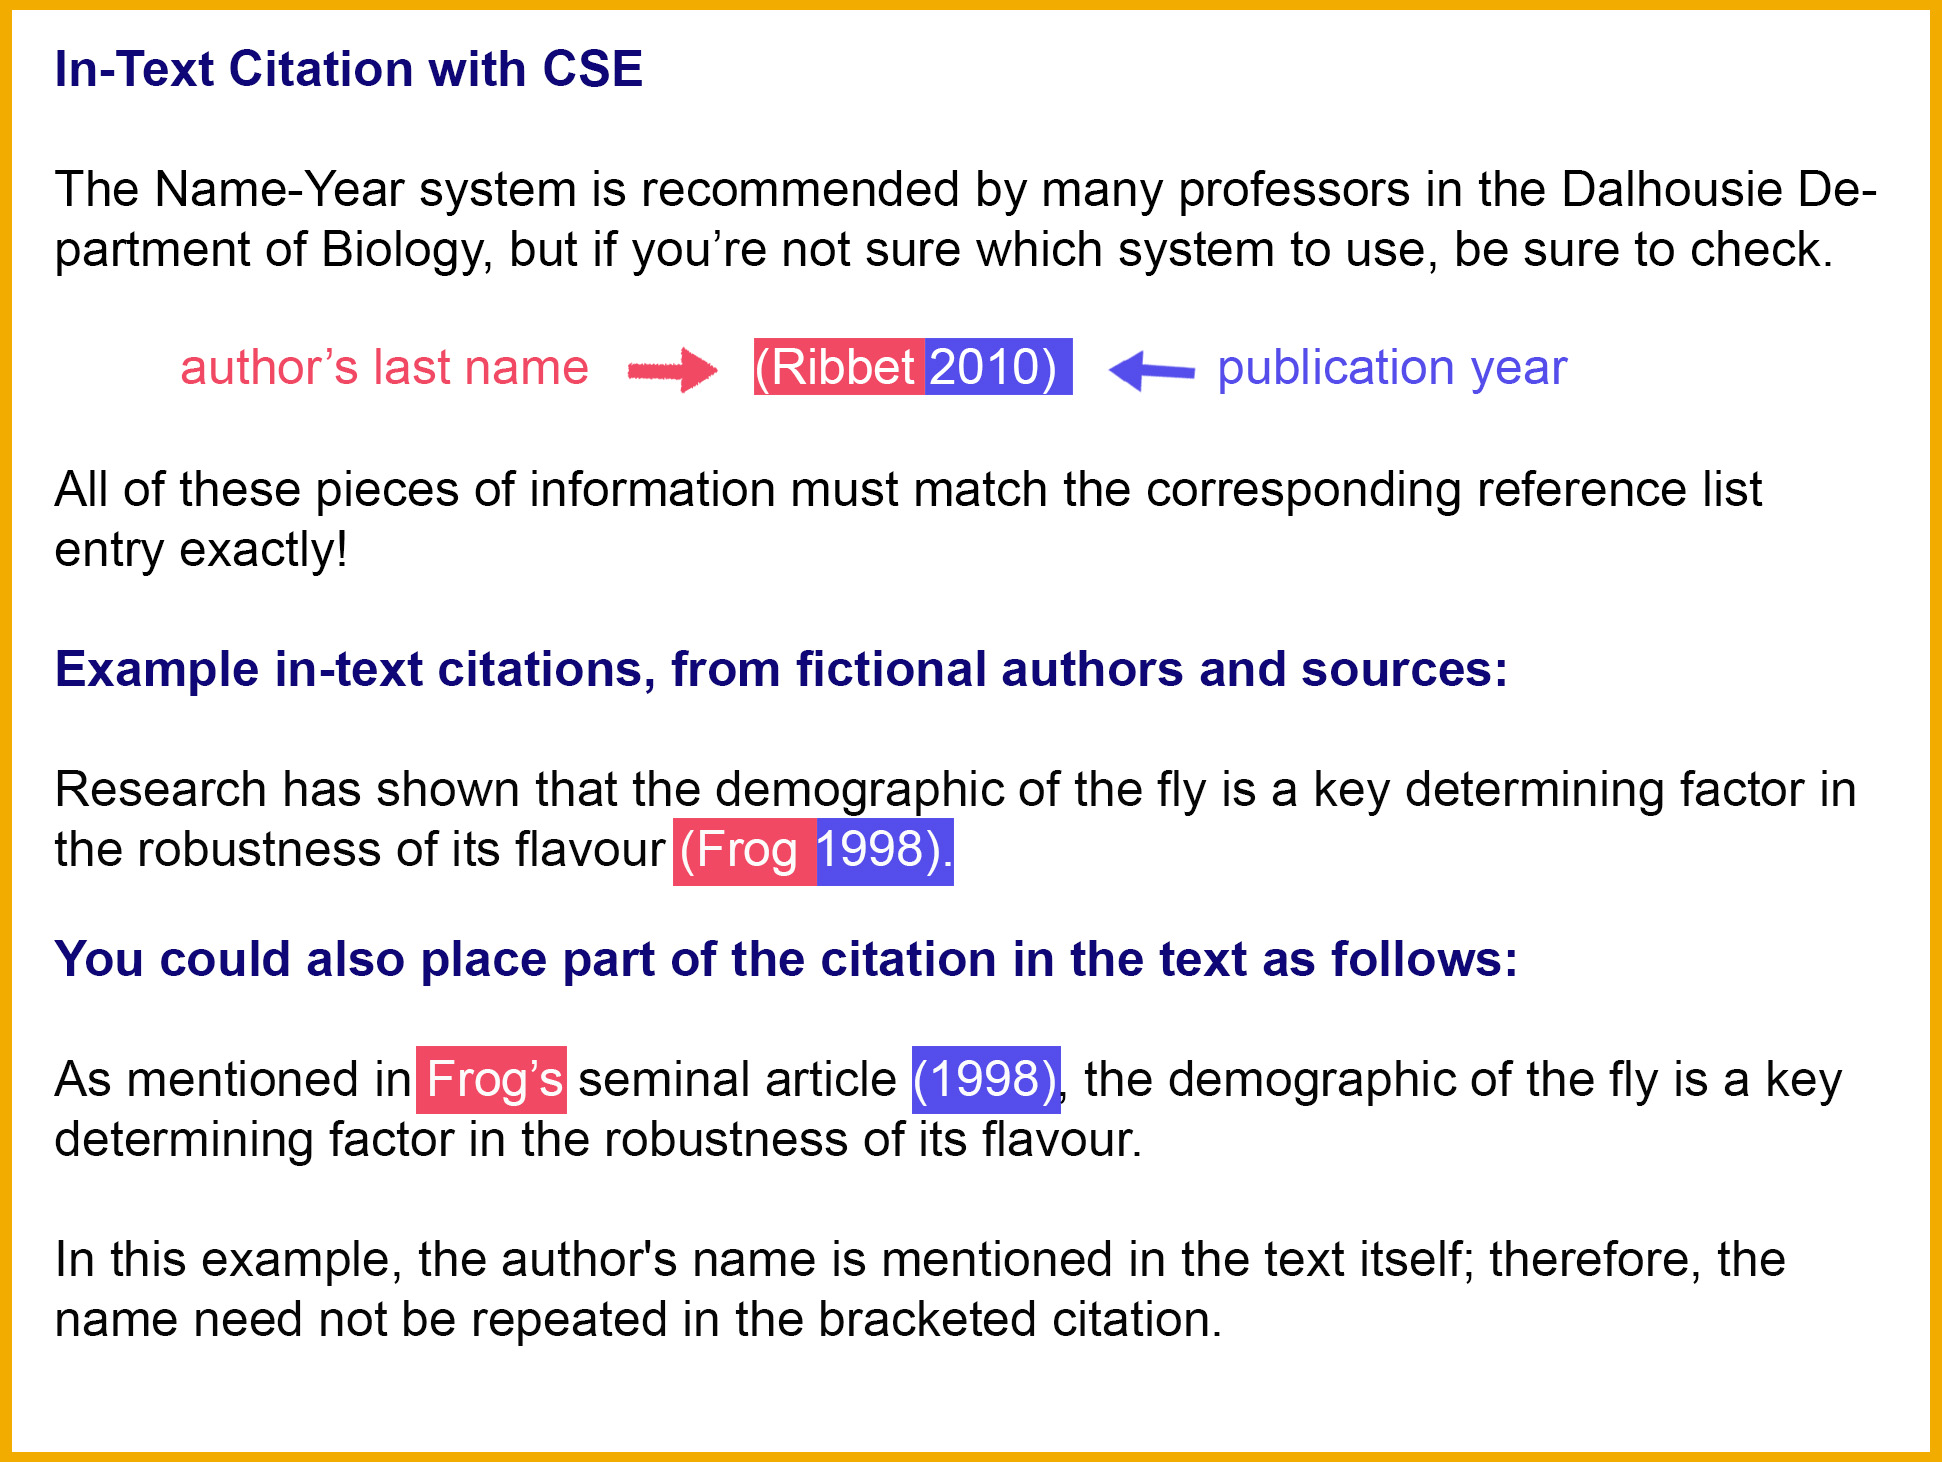 cbe citation generator Types of documentation in-text or parenthetical citations cse/cbe style the cse style manual, written by the council of science editors (formerly the council of biology editors), is used to advise writers in the natural sciences such as biology, biotechnology, and medicine about style and.